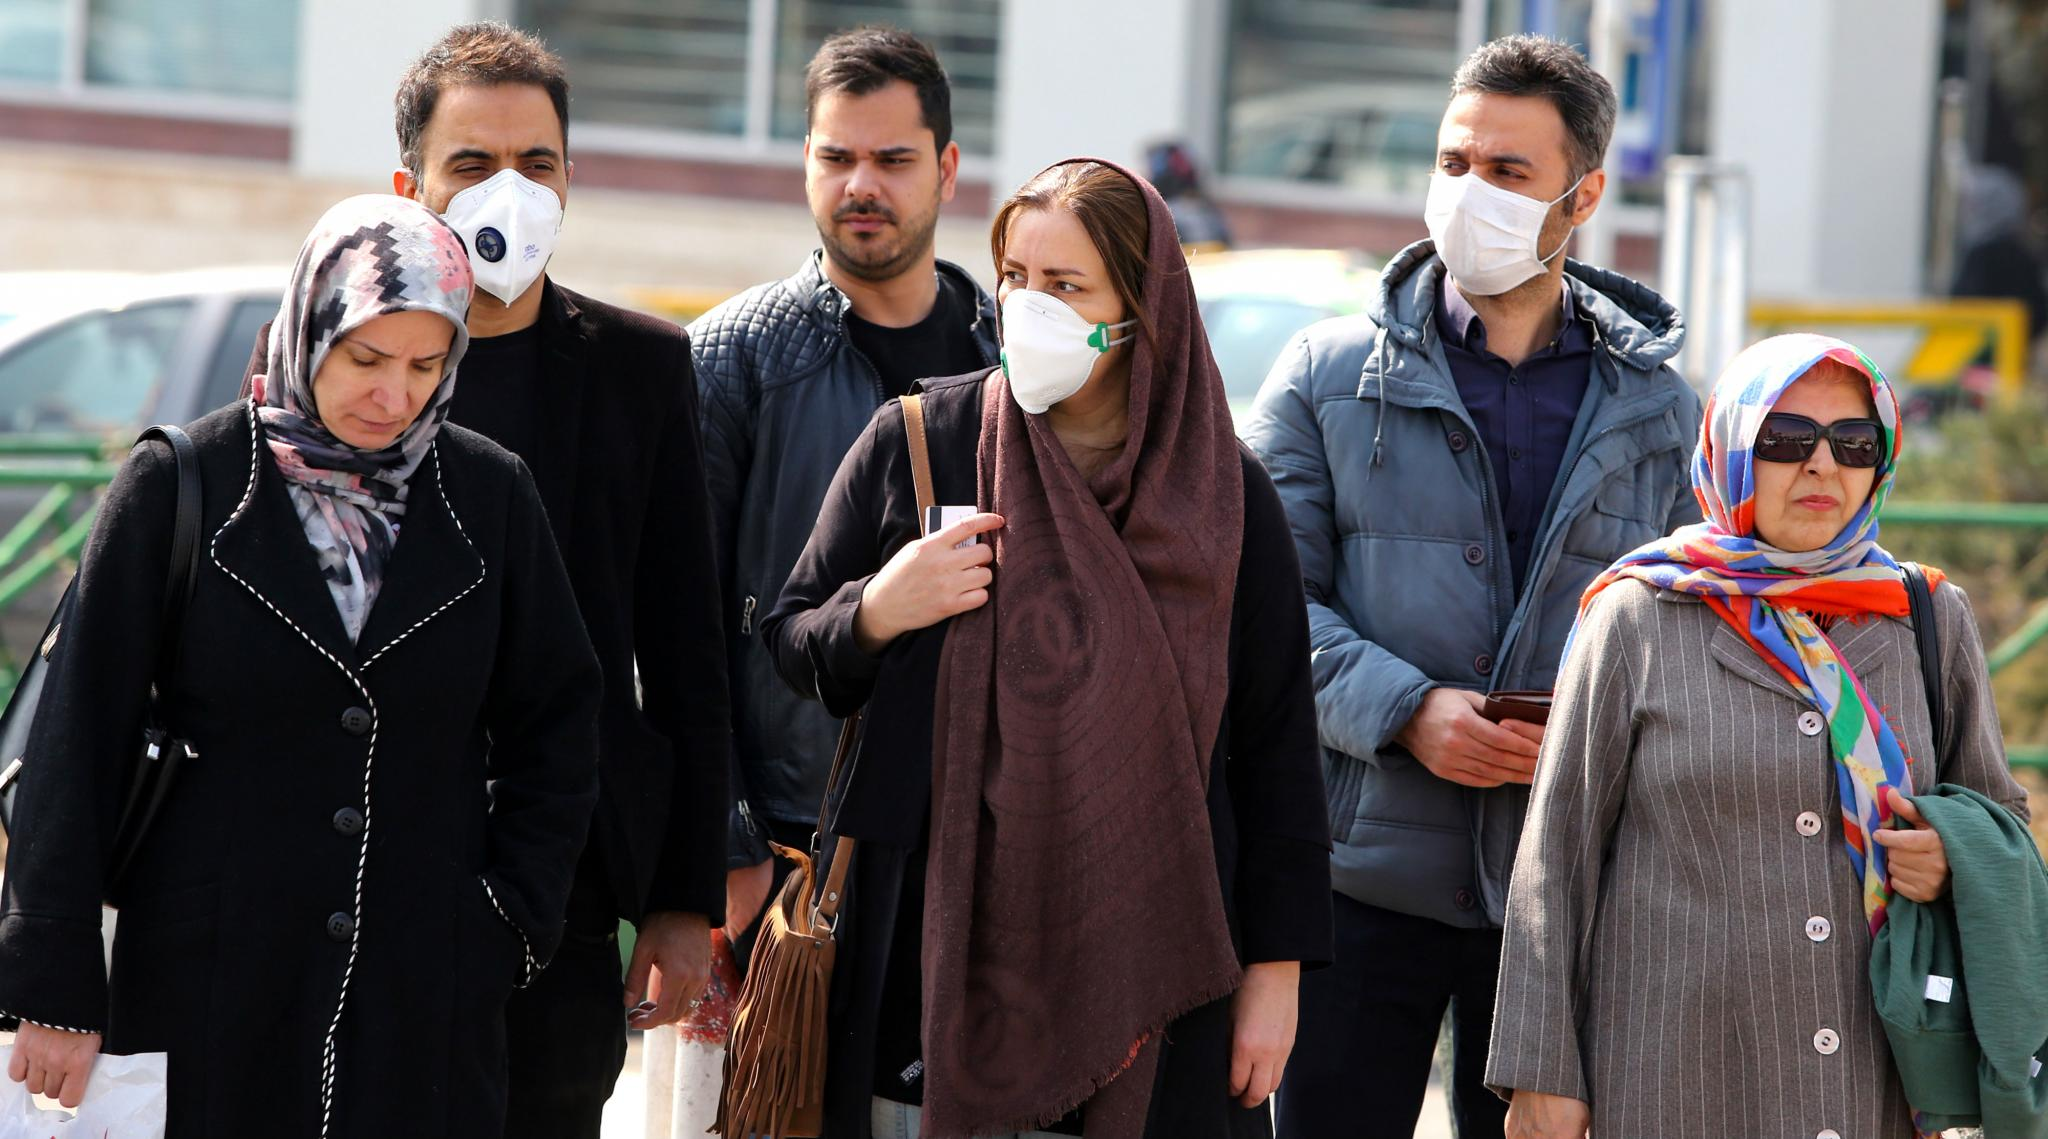 COVID-19 Outbreak: Jordan Bars Travellers From China, Iran, South Korea Over Deadly Coronavirus Scare